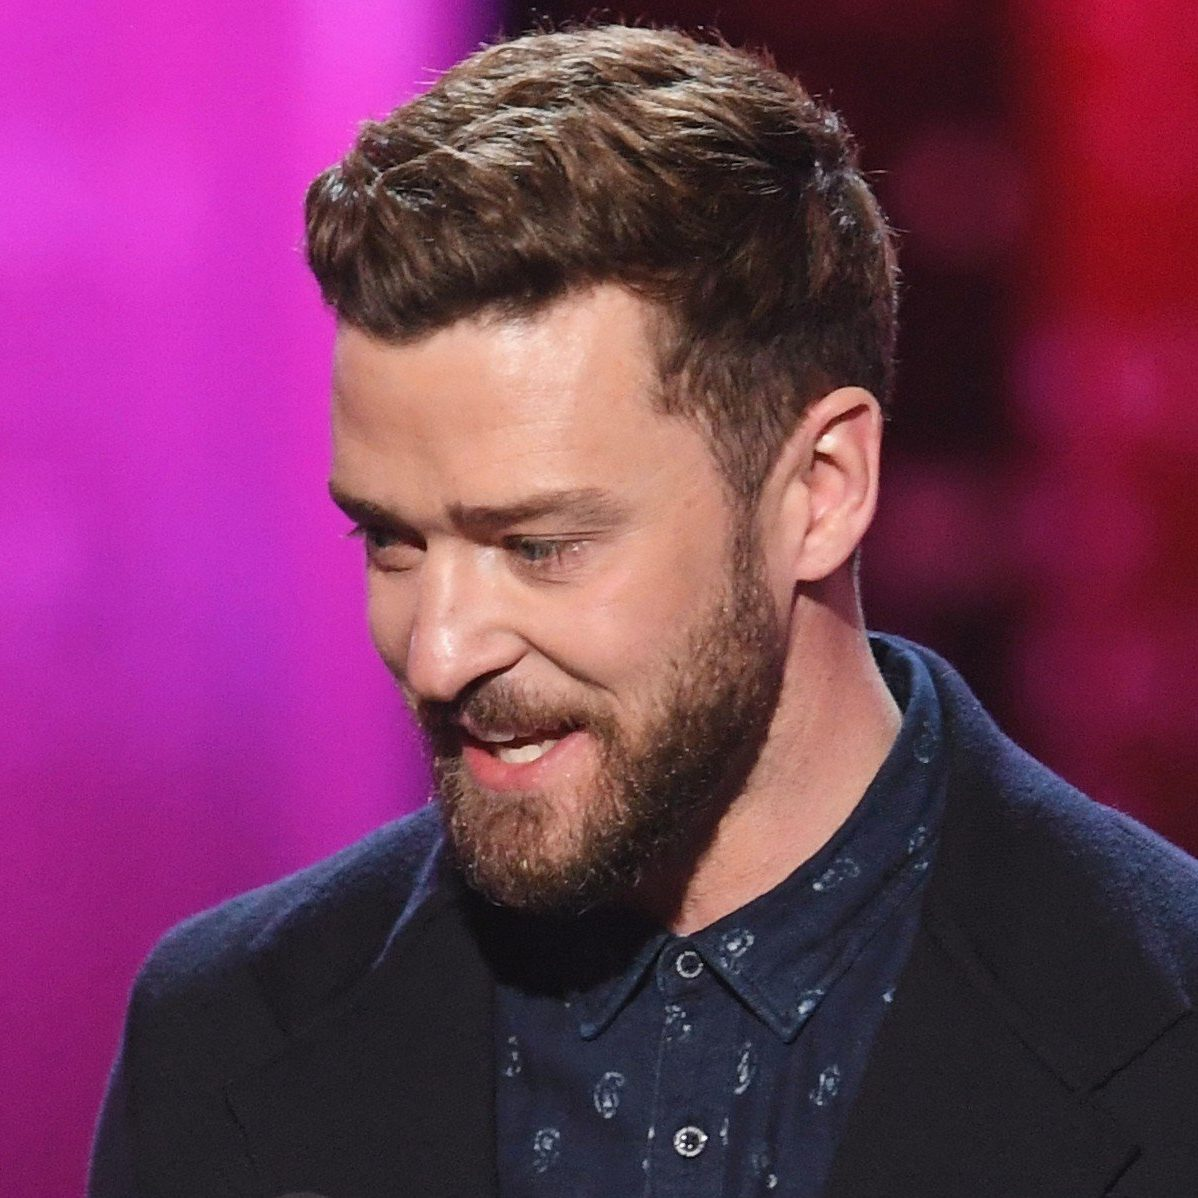 Justin timberlake haircut at the 2017 peoples choice awards jt rocks a traditional mens hairstyle with just enough length on top to show some of that natural texture urmus Choice Image